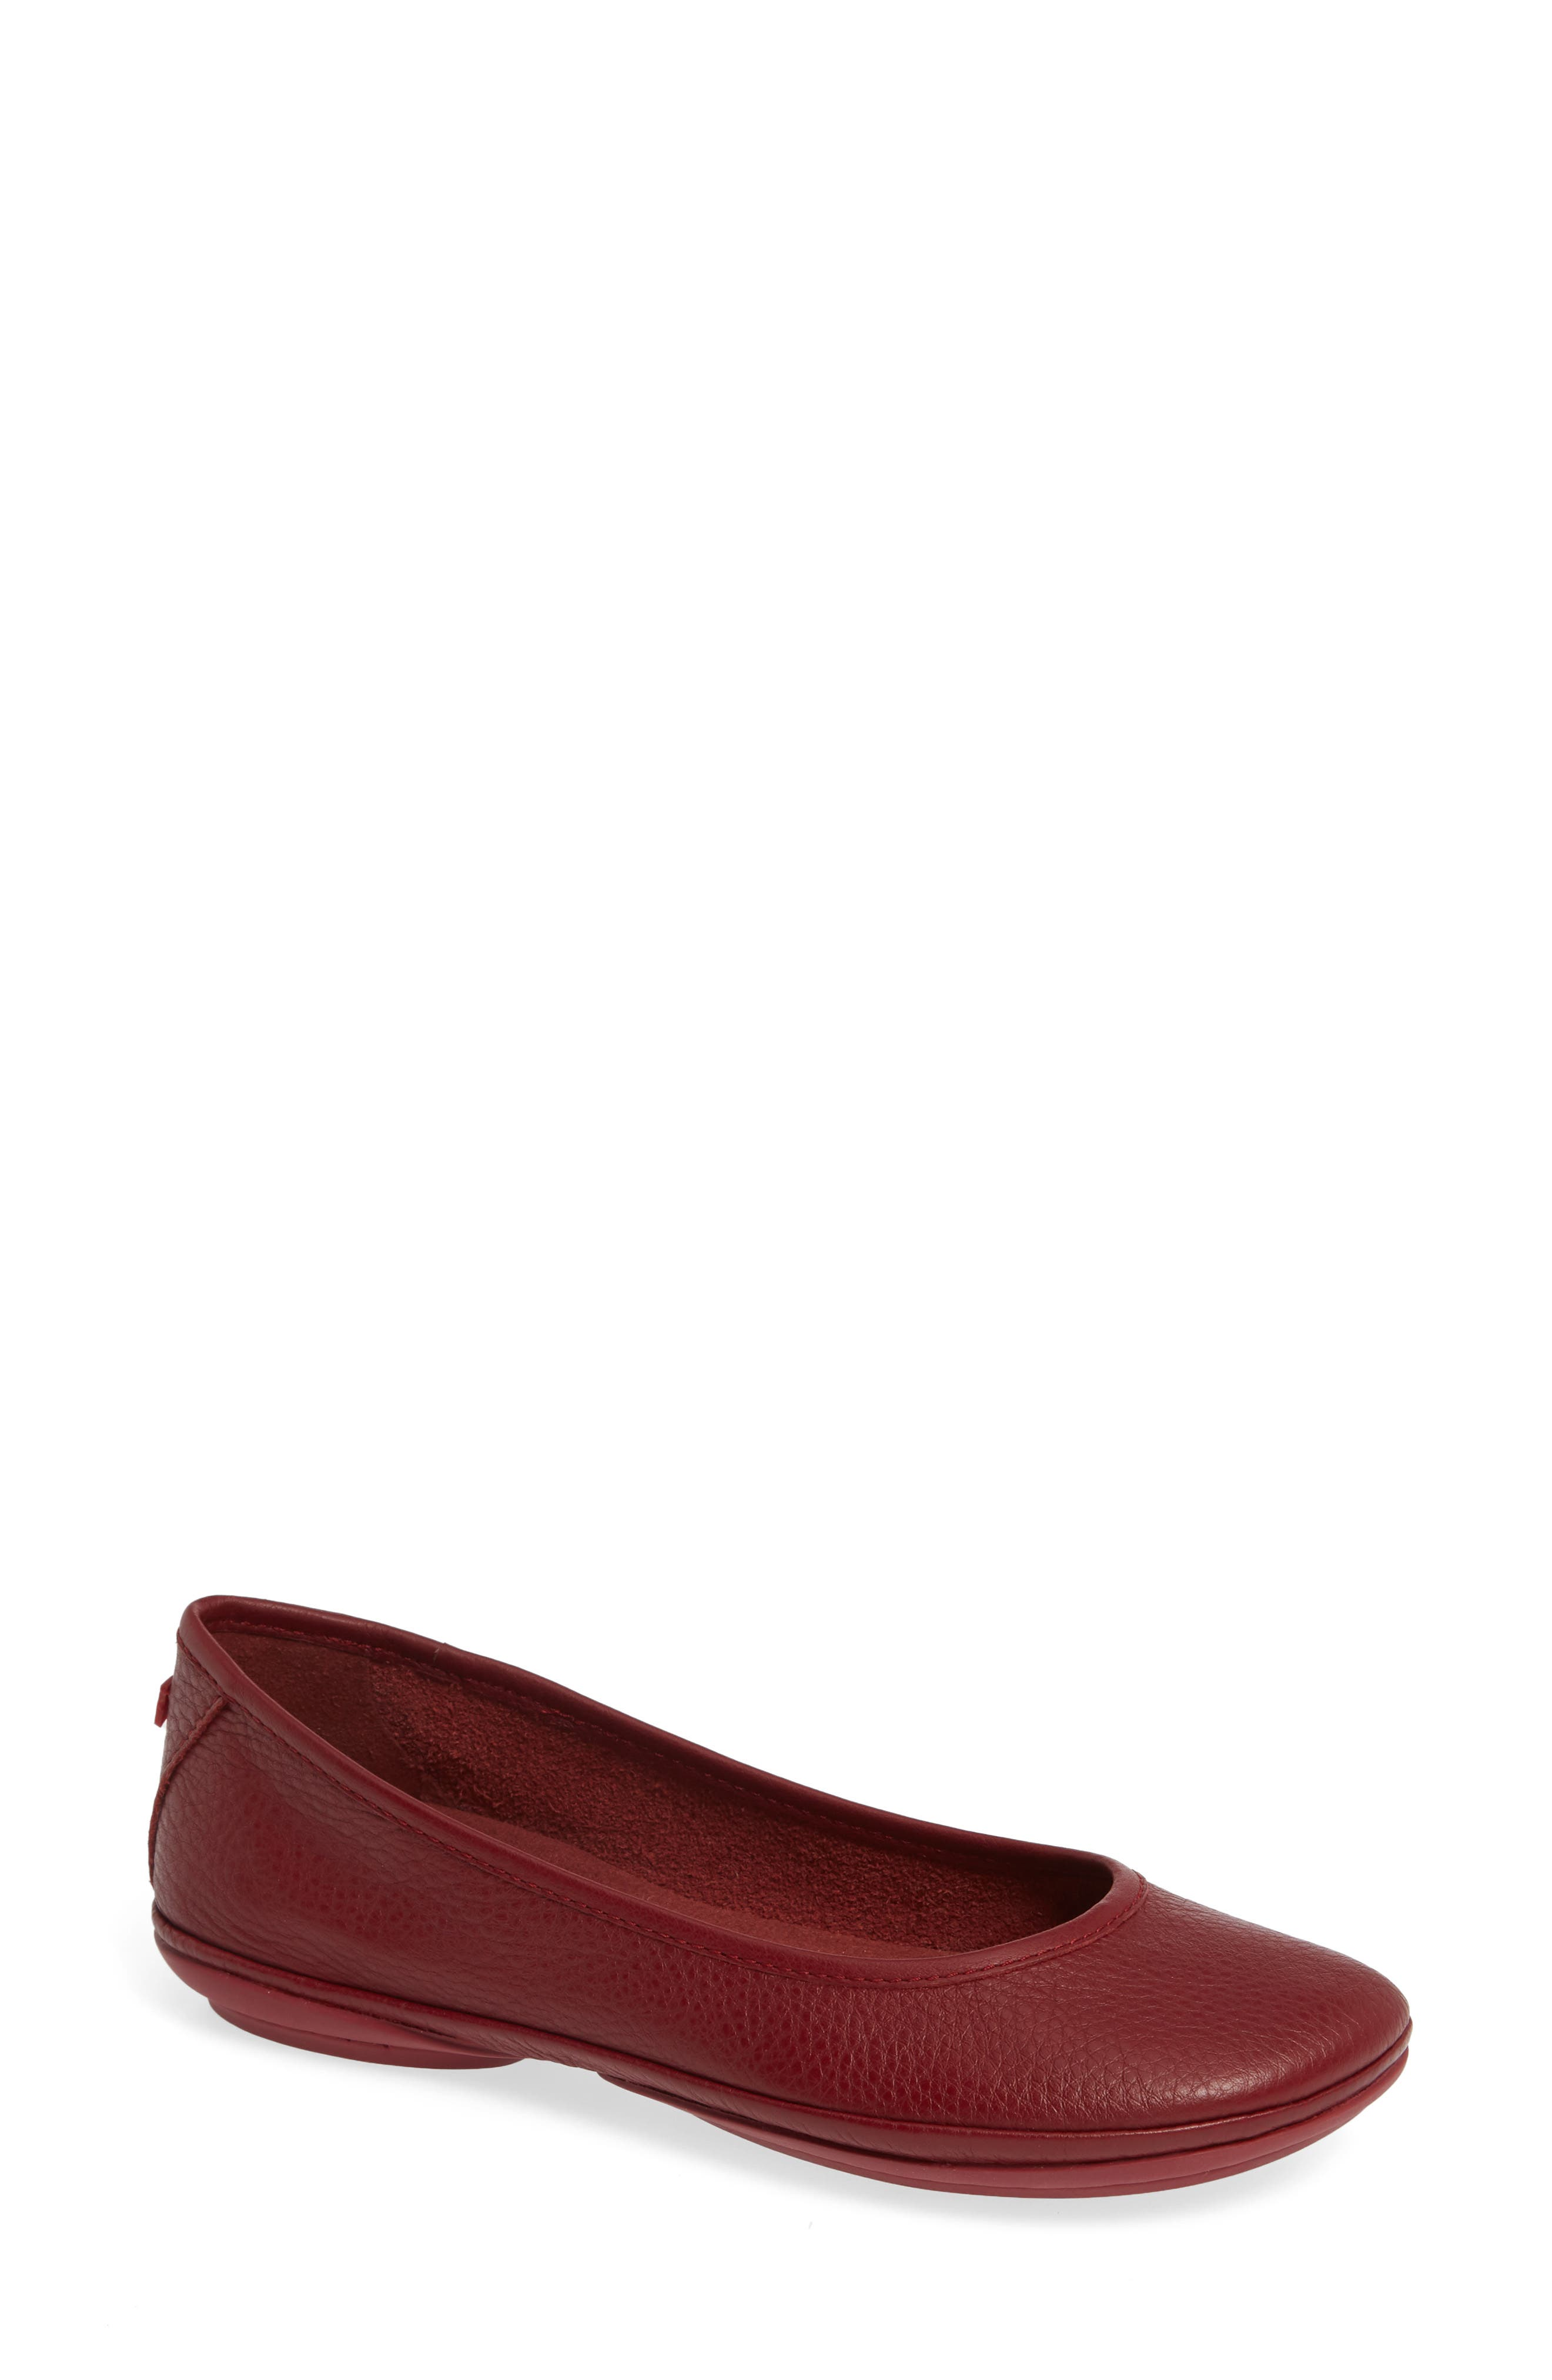 CAMPER Right Nina Ballet Flat in Red Leather